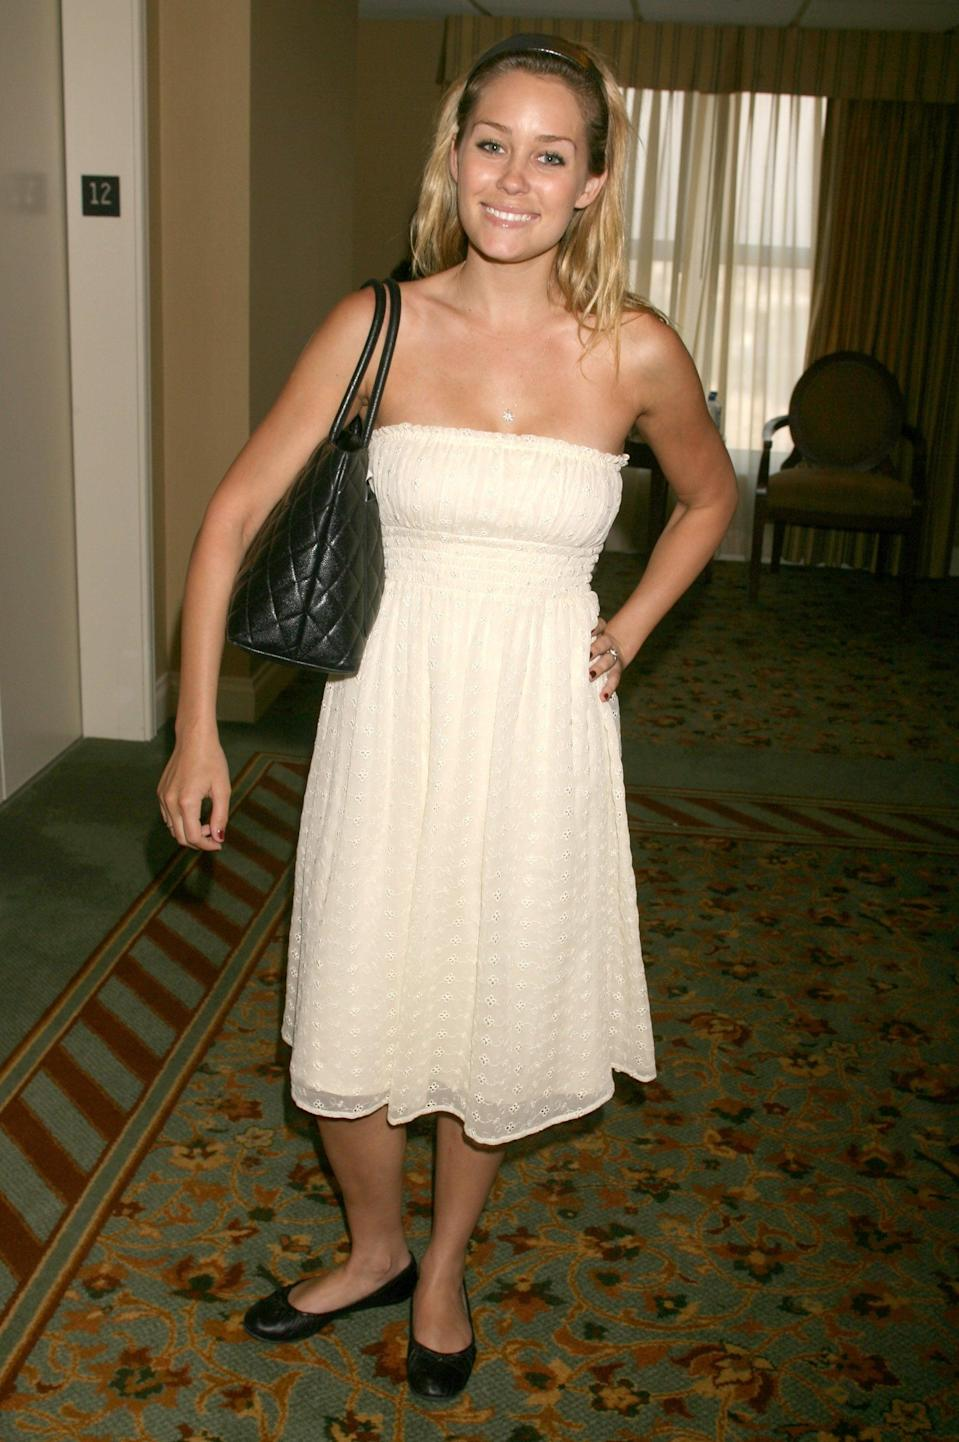 <p>Add flats and a tote, and you're ready for whatever the day brings, without the risk of a tan line. That's crucial in Laguna Beach. </p>